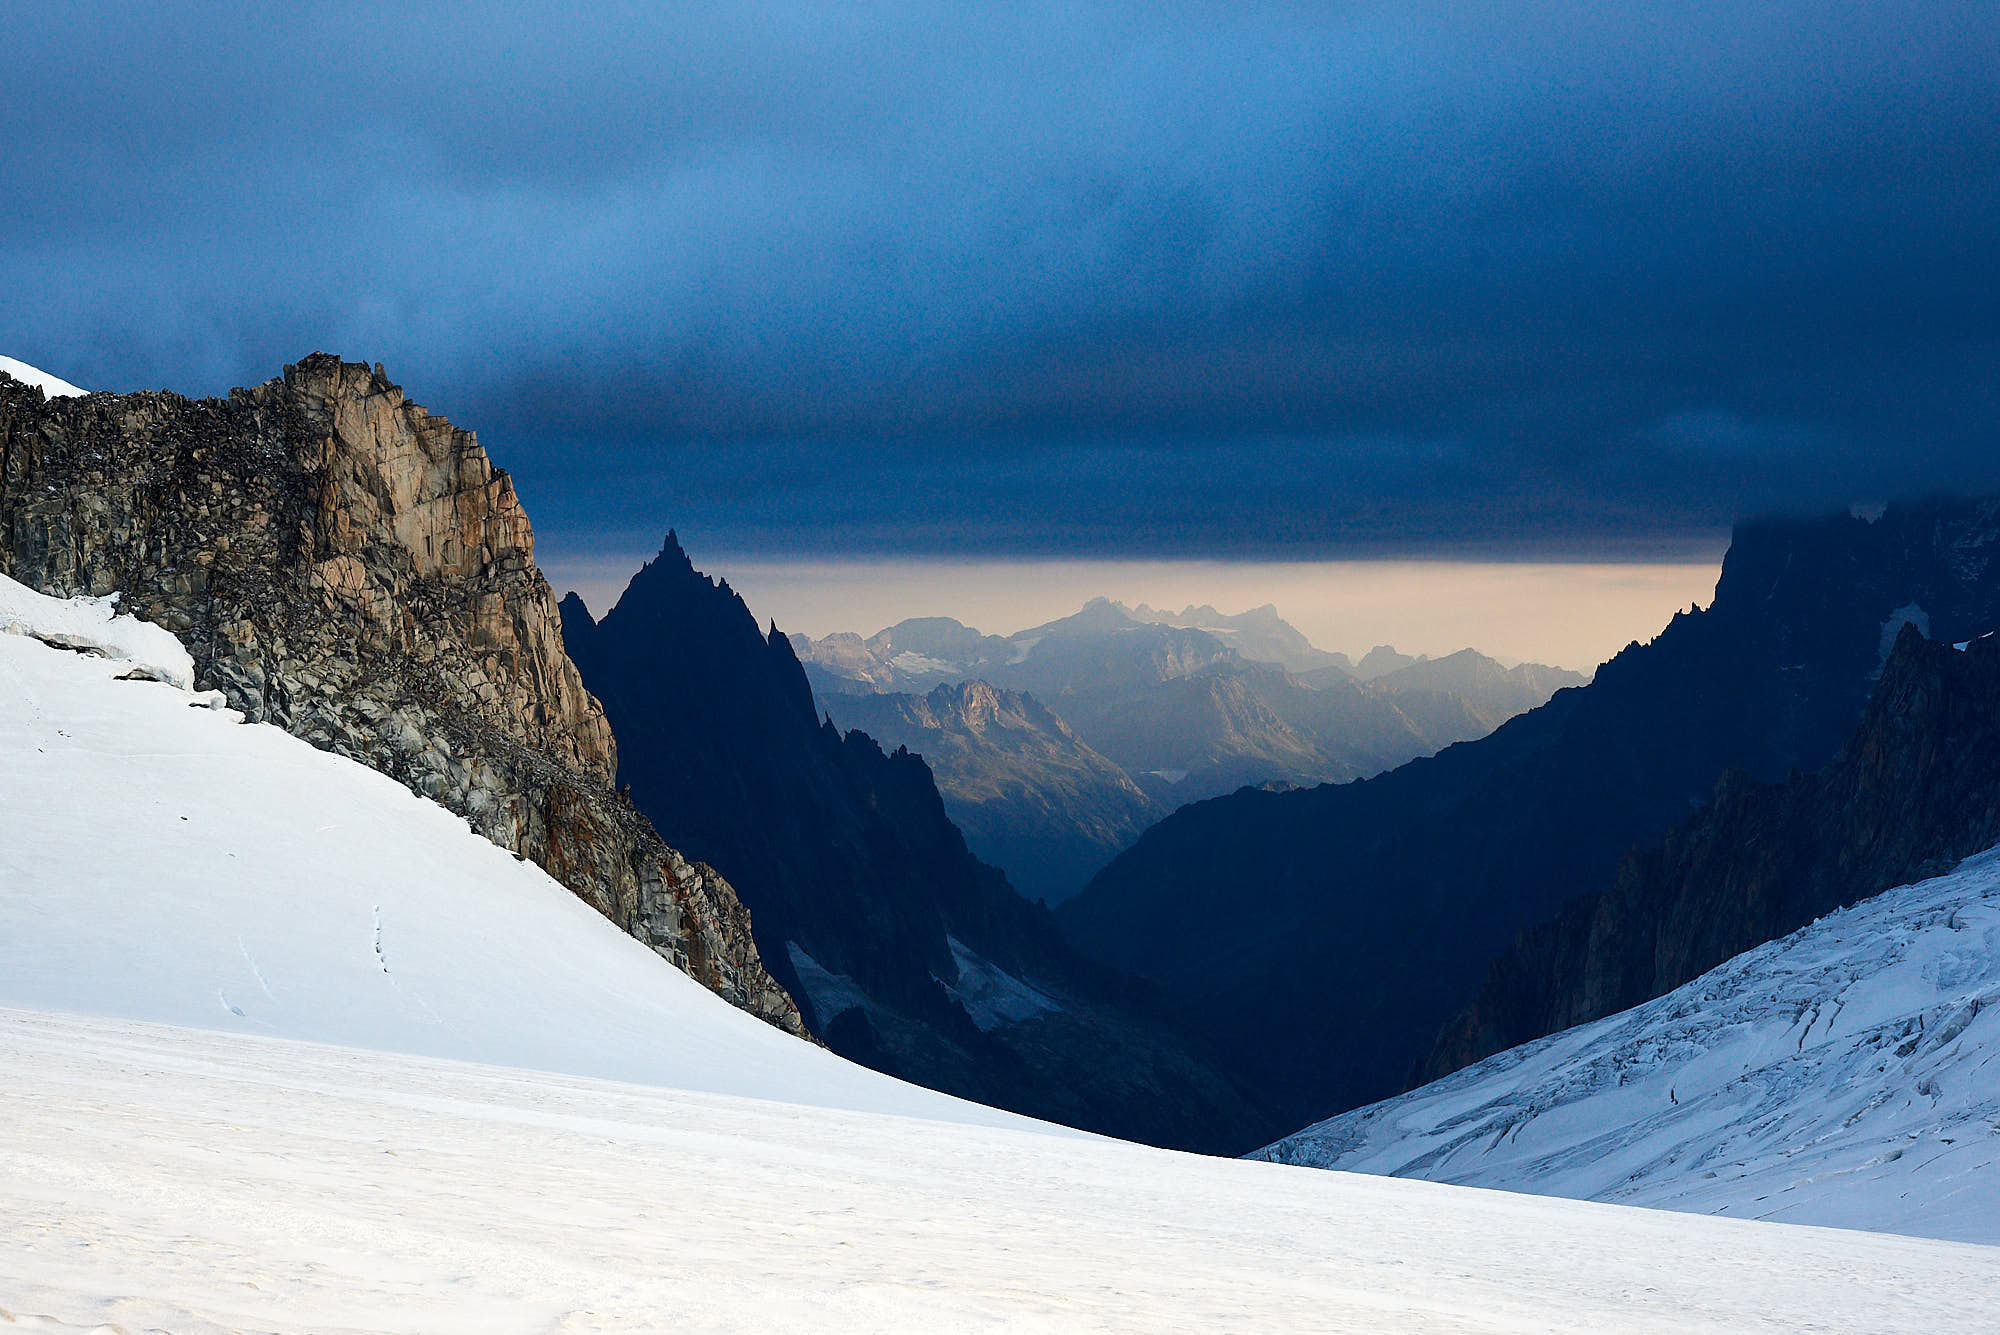 View of French Alps near Mont Blanc